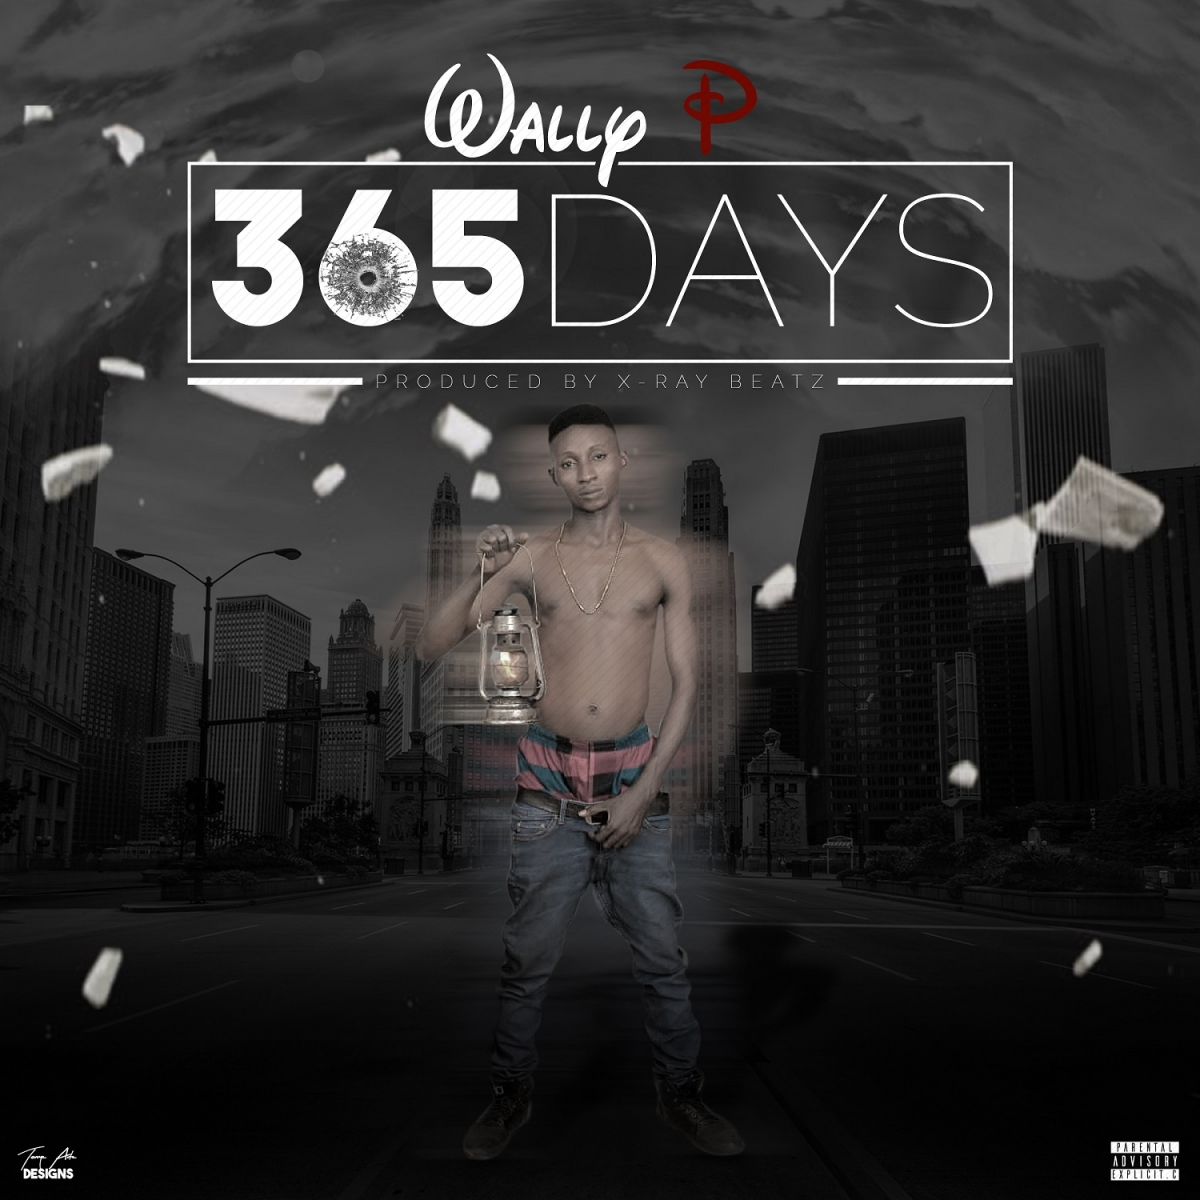 Wally P - 365 Days (Prod. by X-Ray Beatz)